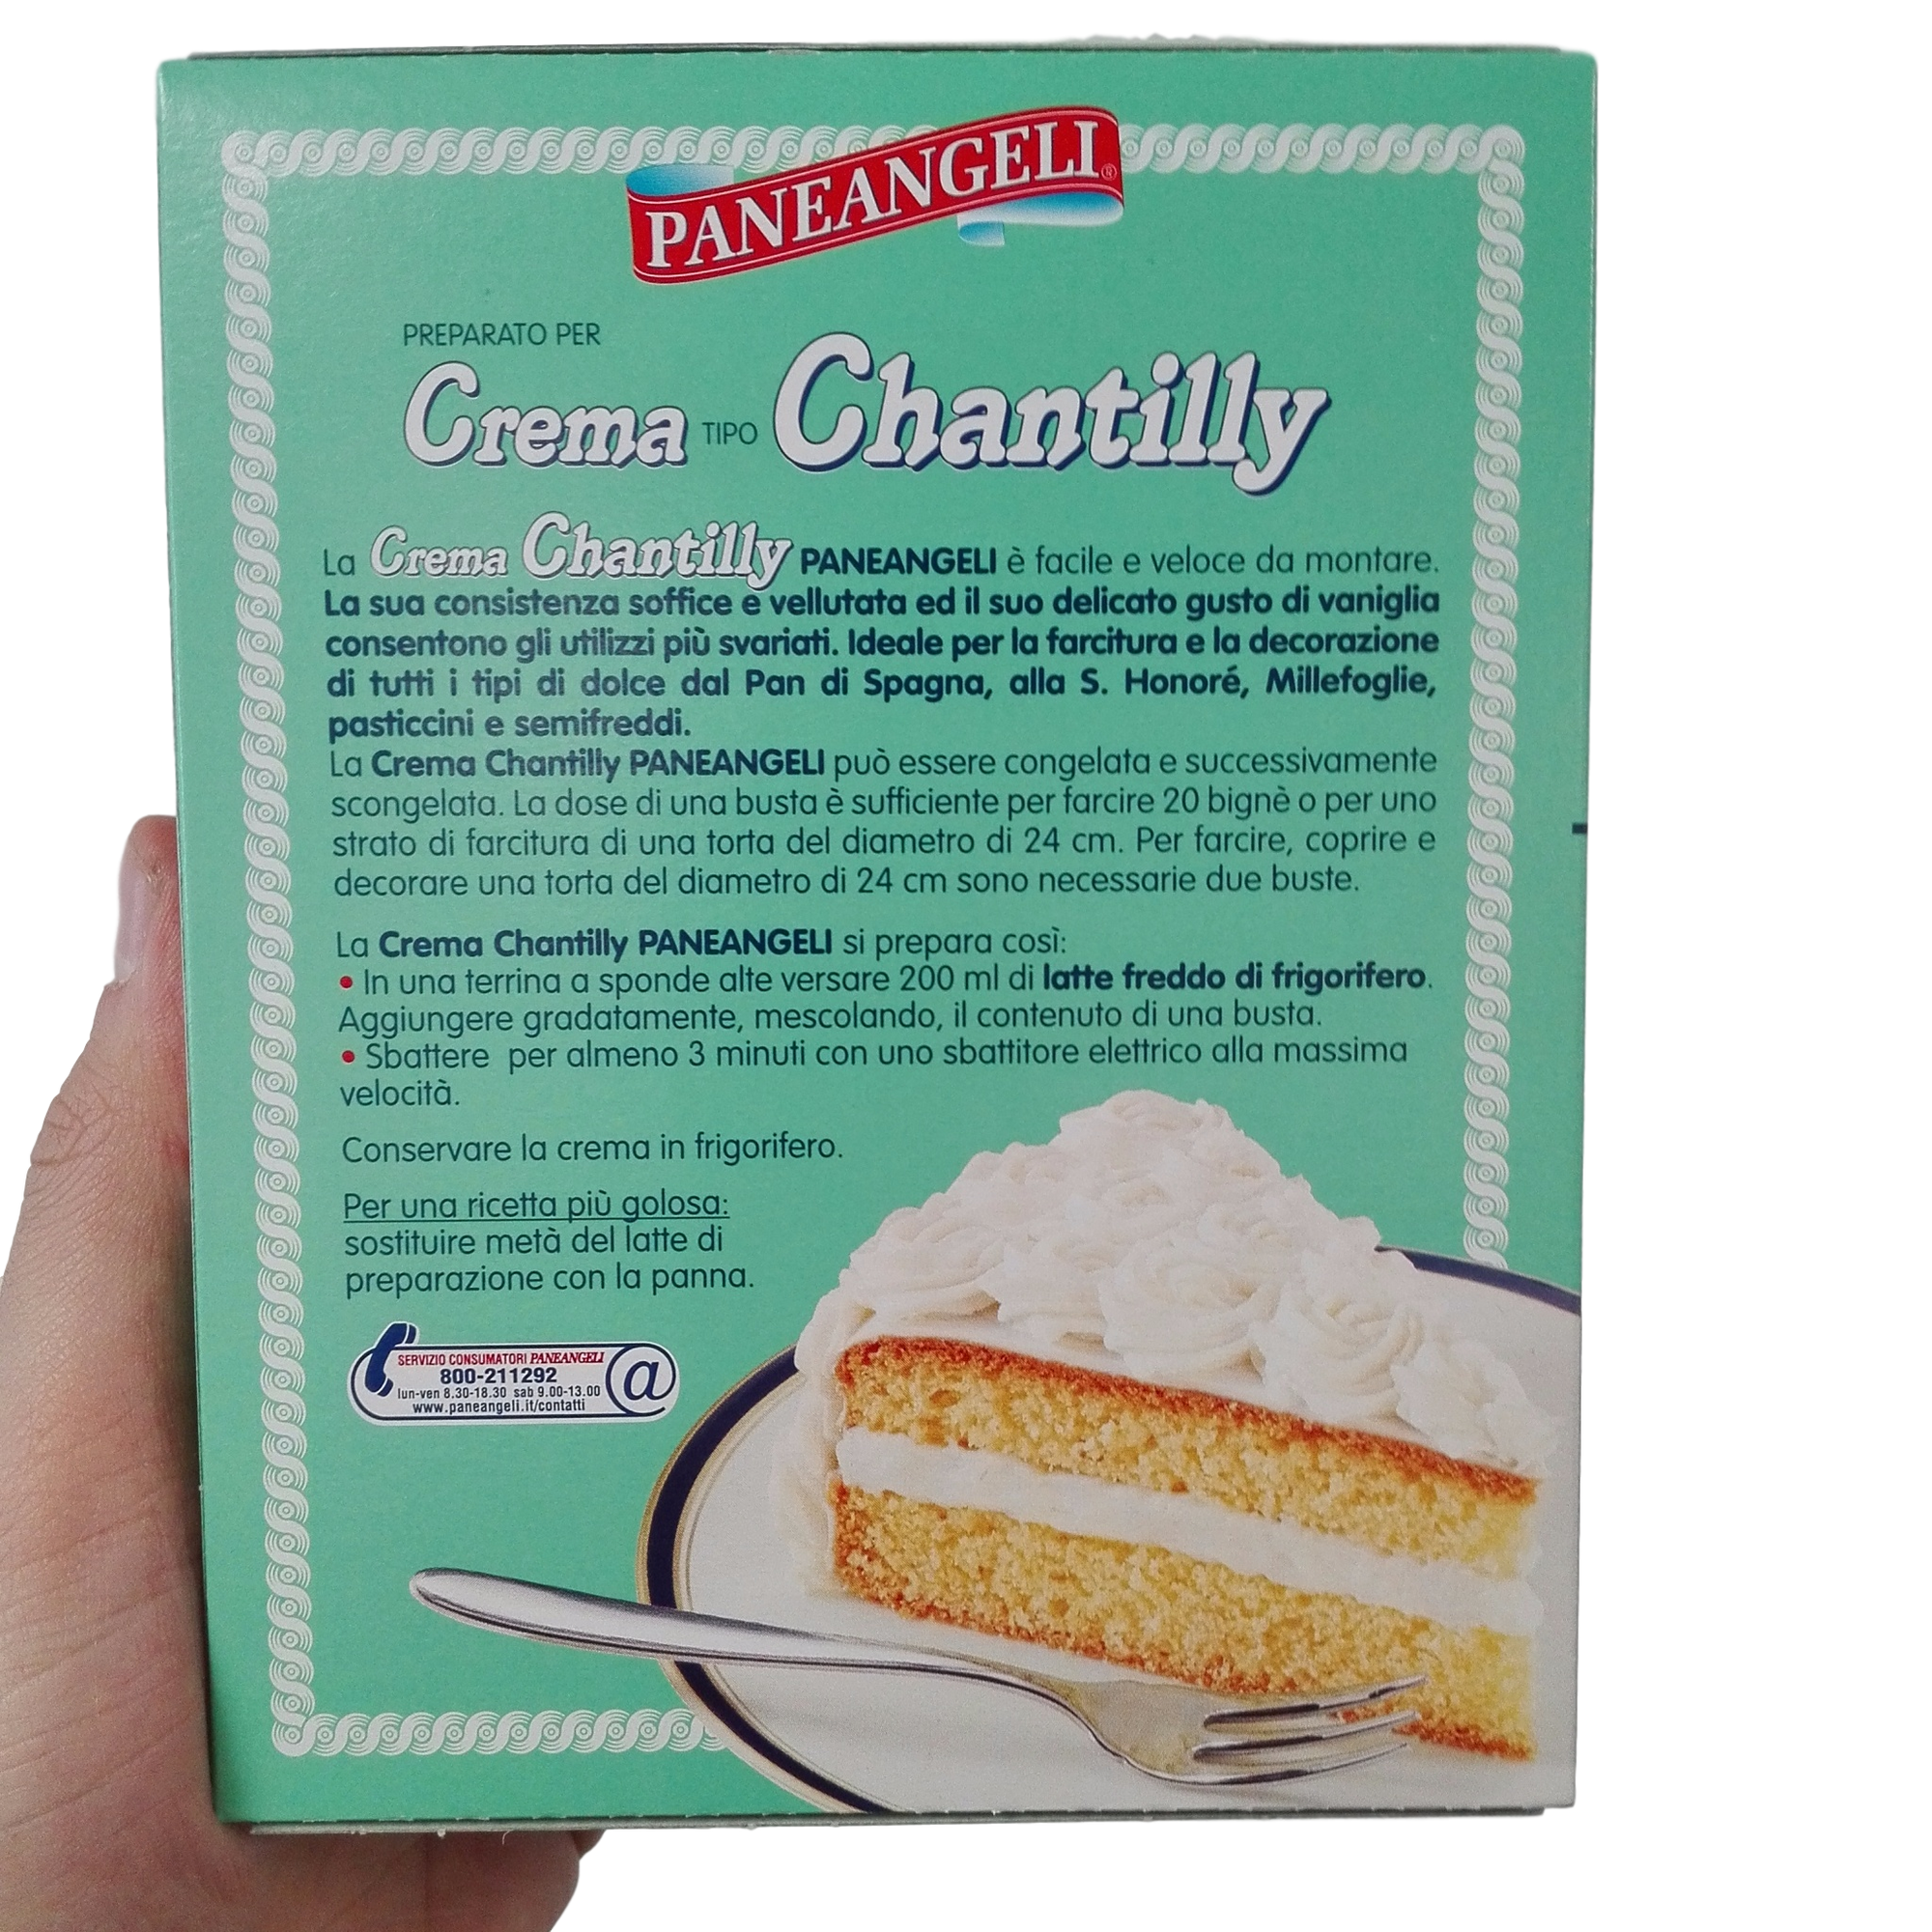 Paneangeli Prep For Chantilly Cream Gr 114 Mydelibox